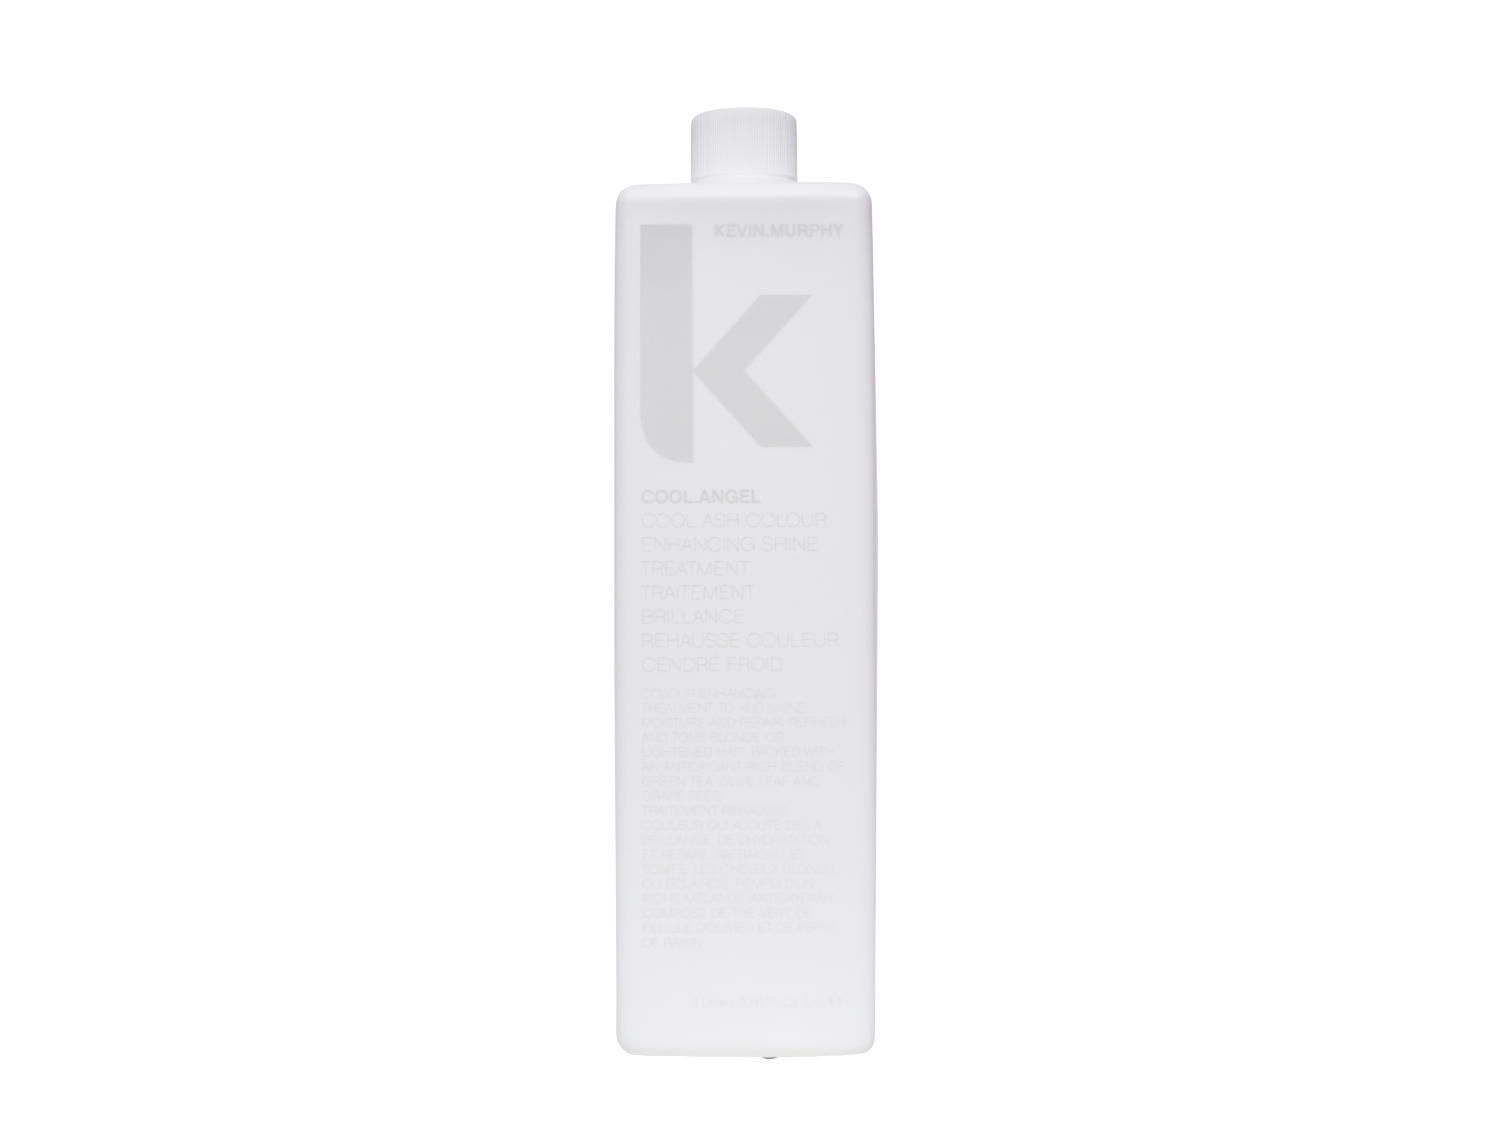 Arma Beauty - Kevin Murphy - COOL.ANGEL